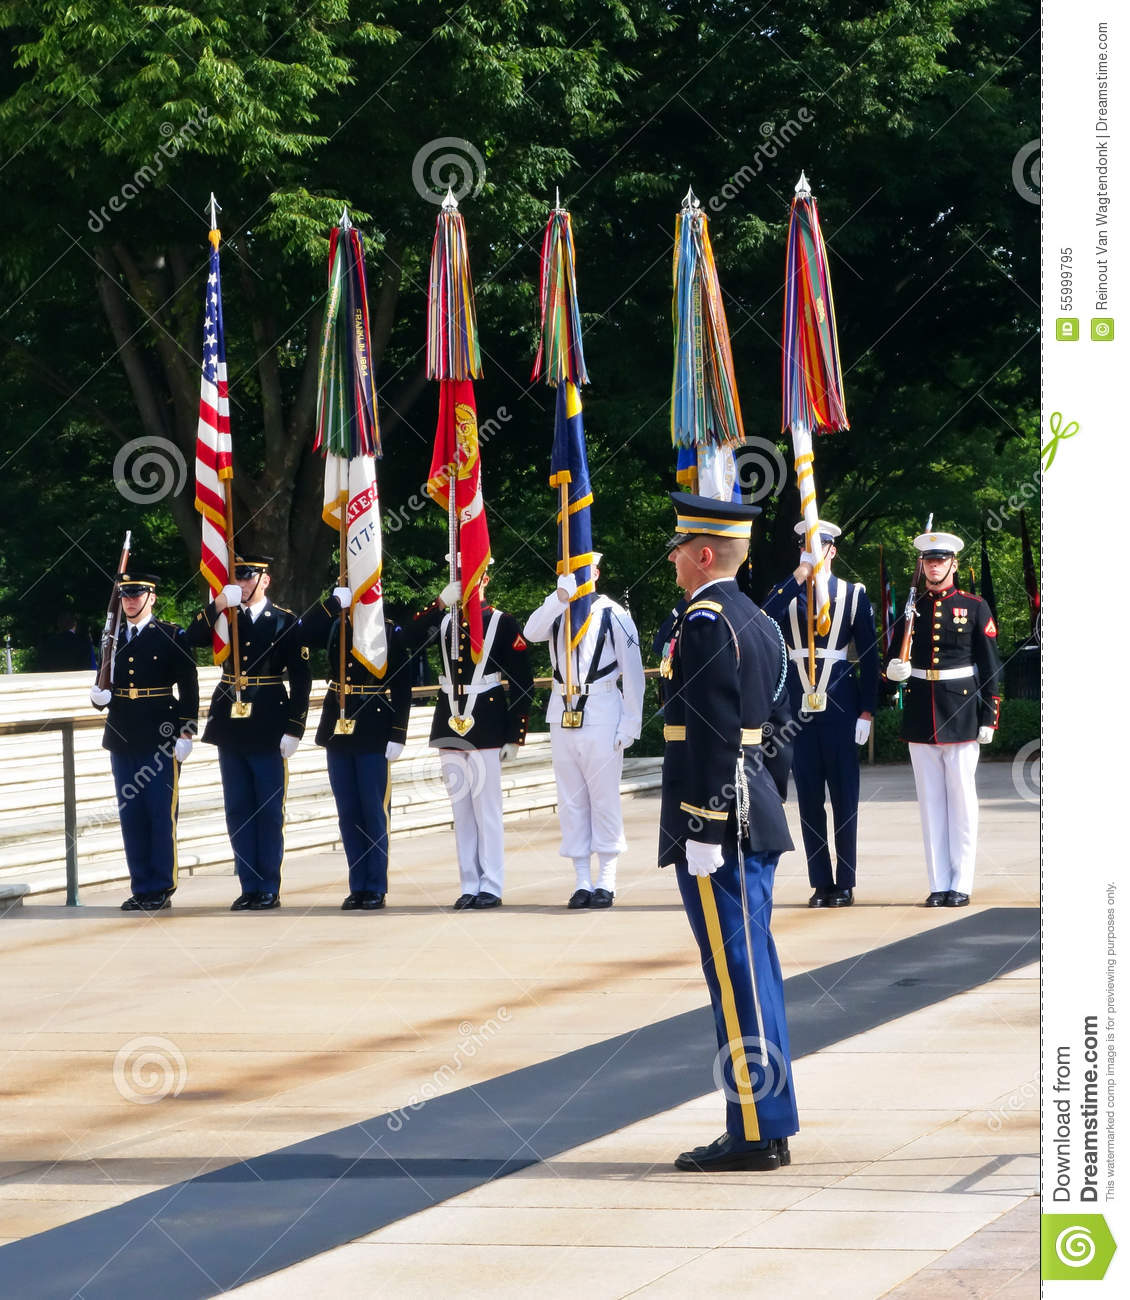 Army color guard clipart.